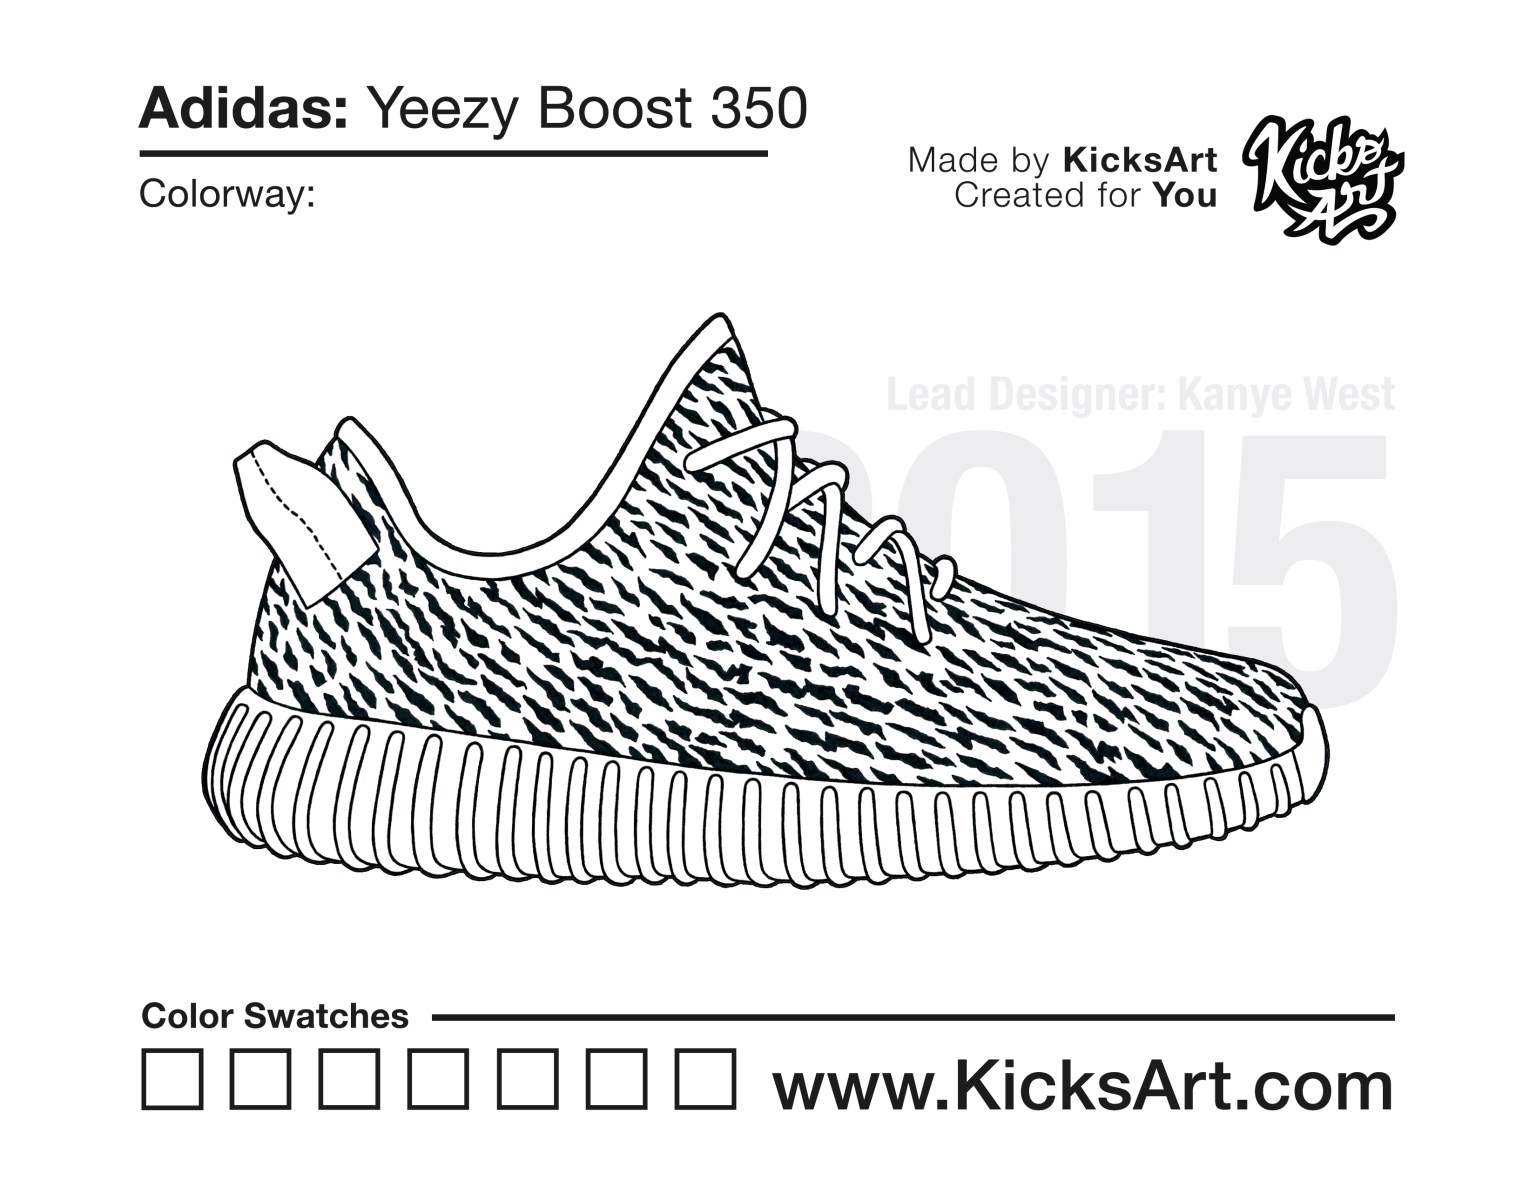 Adidas Yeezy Boost 350 Sneaker Coloring Pages Created By Kicksart